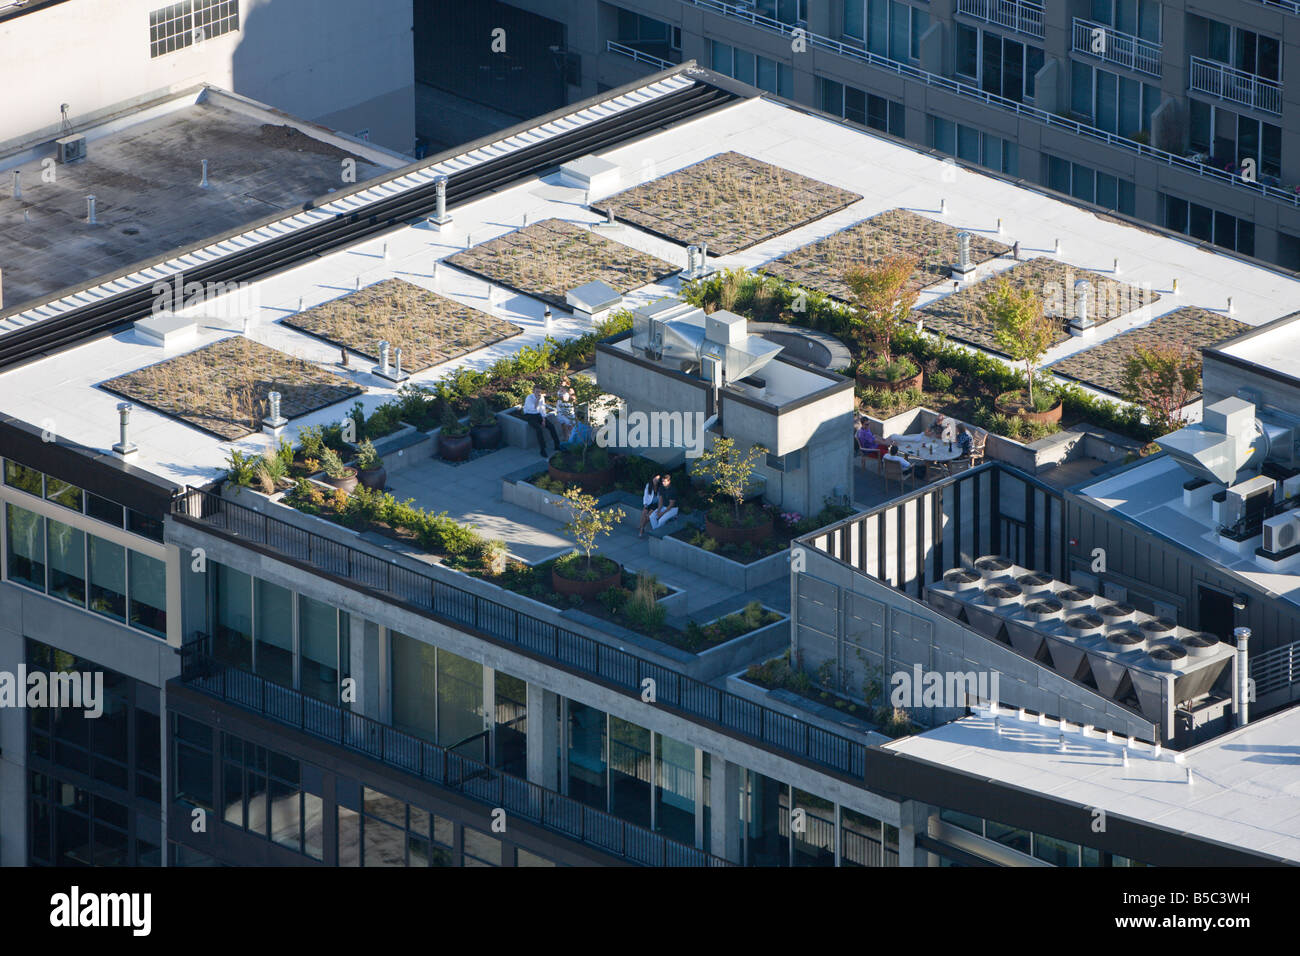 Rooftop Garden City United States Stock Photos \u0026 Rooftop